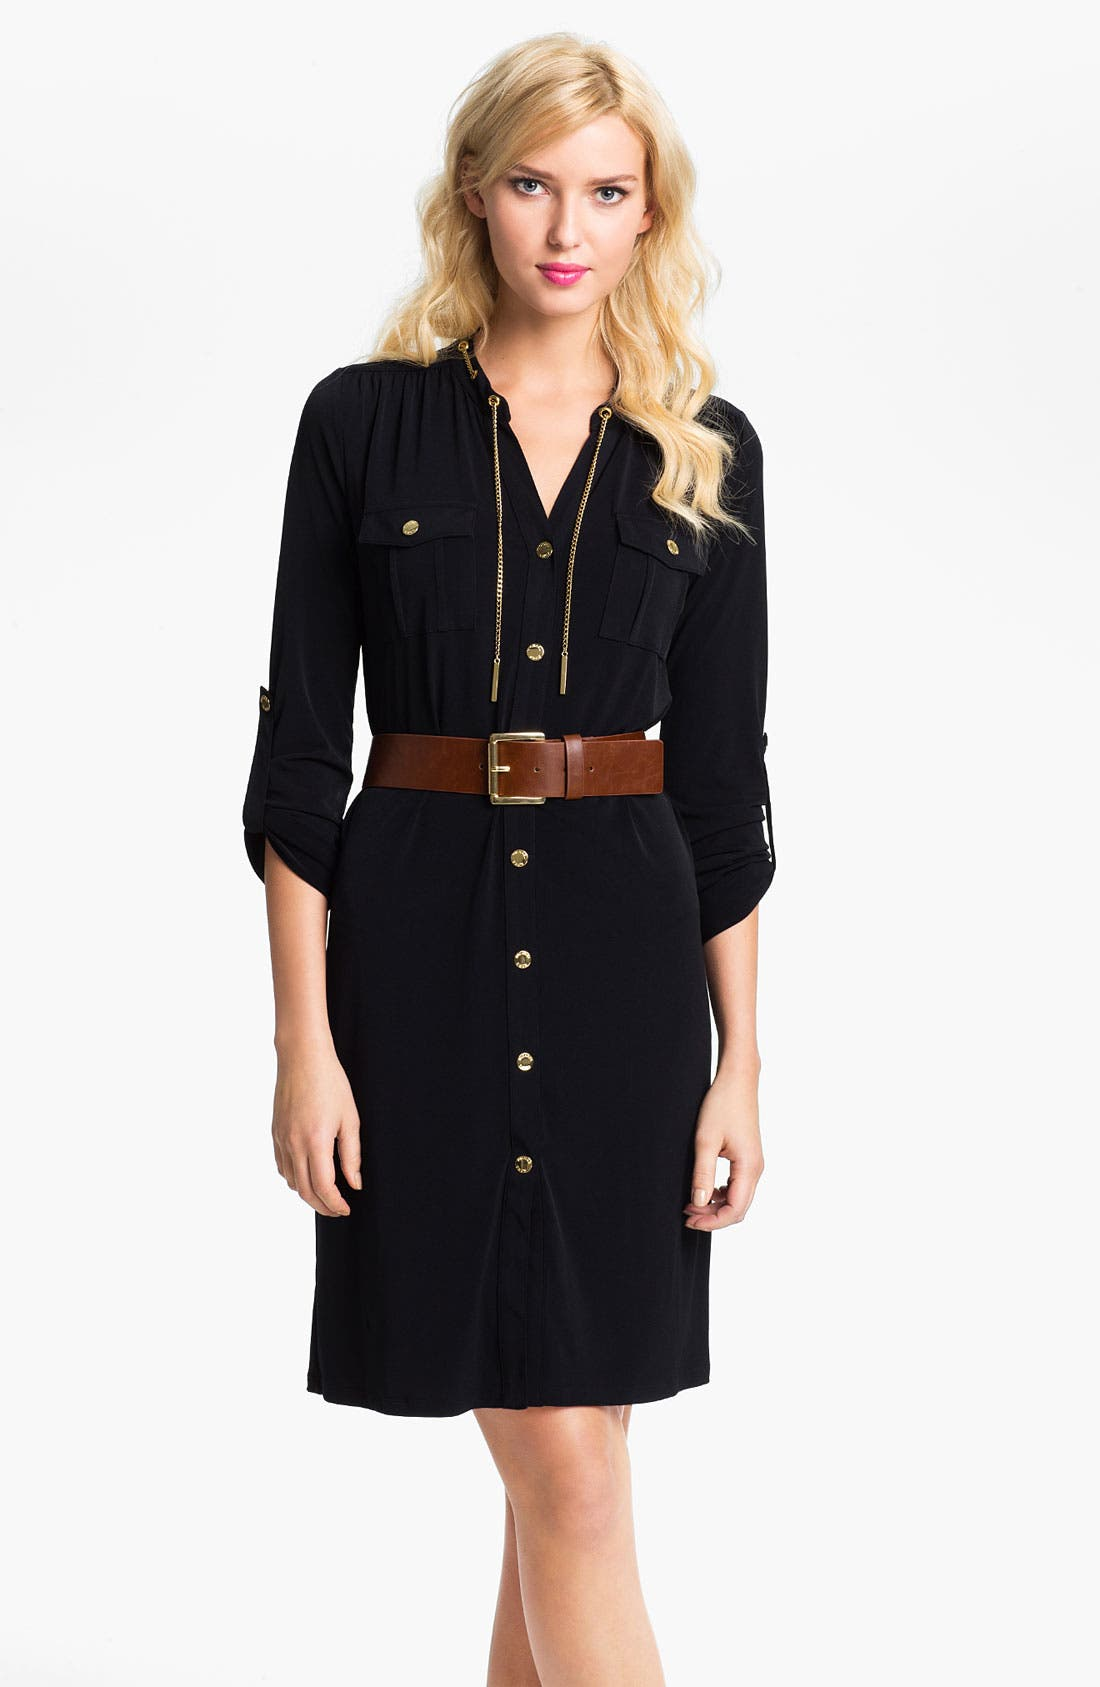 Alternate Image 1 Selected - MICHAEL Michael Kors 'Chain' Shirtdress